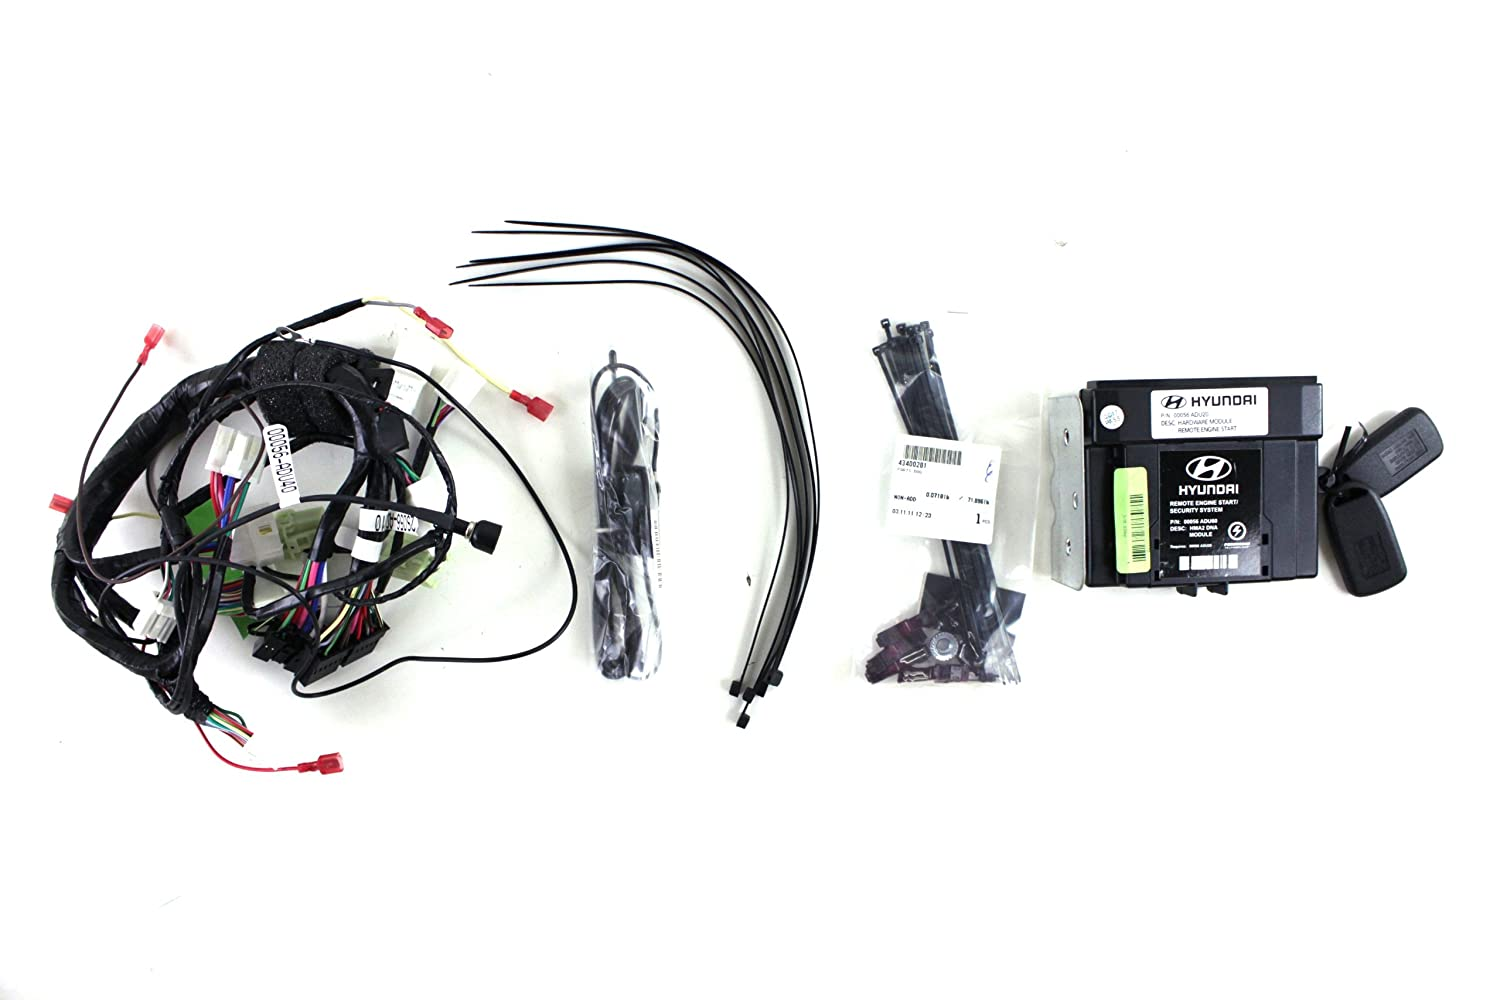 Hyundai Genuine Accessories 2s056 Adu00 Remote Start Kit Electrical Wiring Tucson Automotive